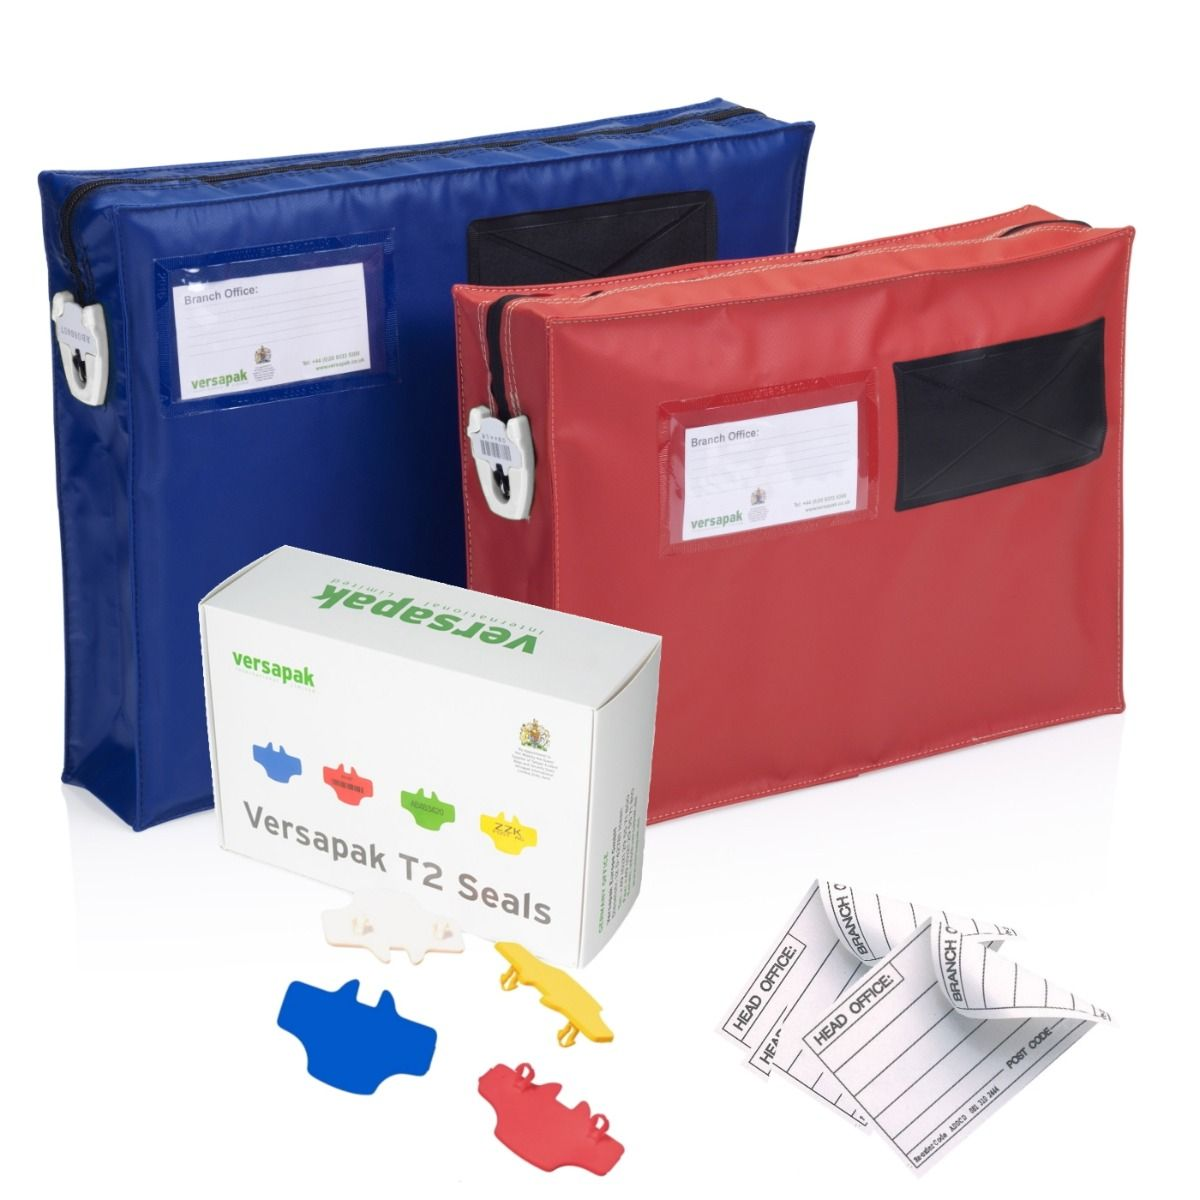 Small Gusset Mail Pouches - Security Seals Bundle